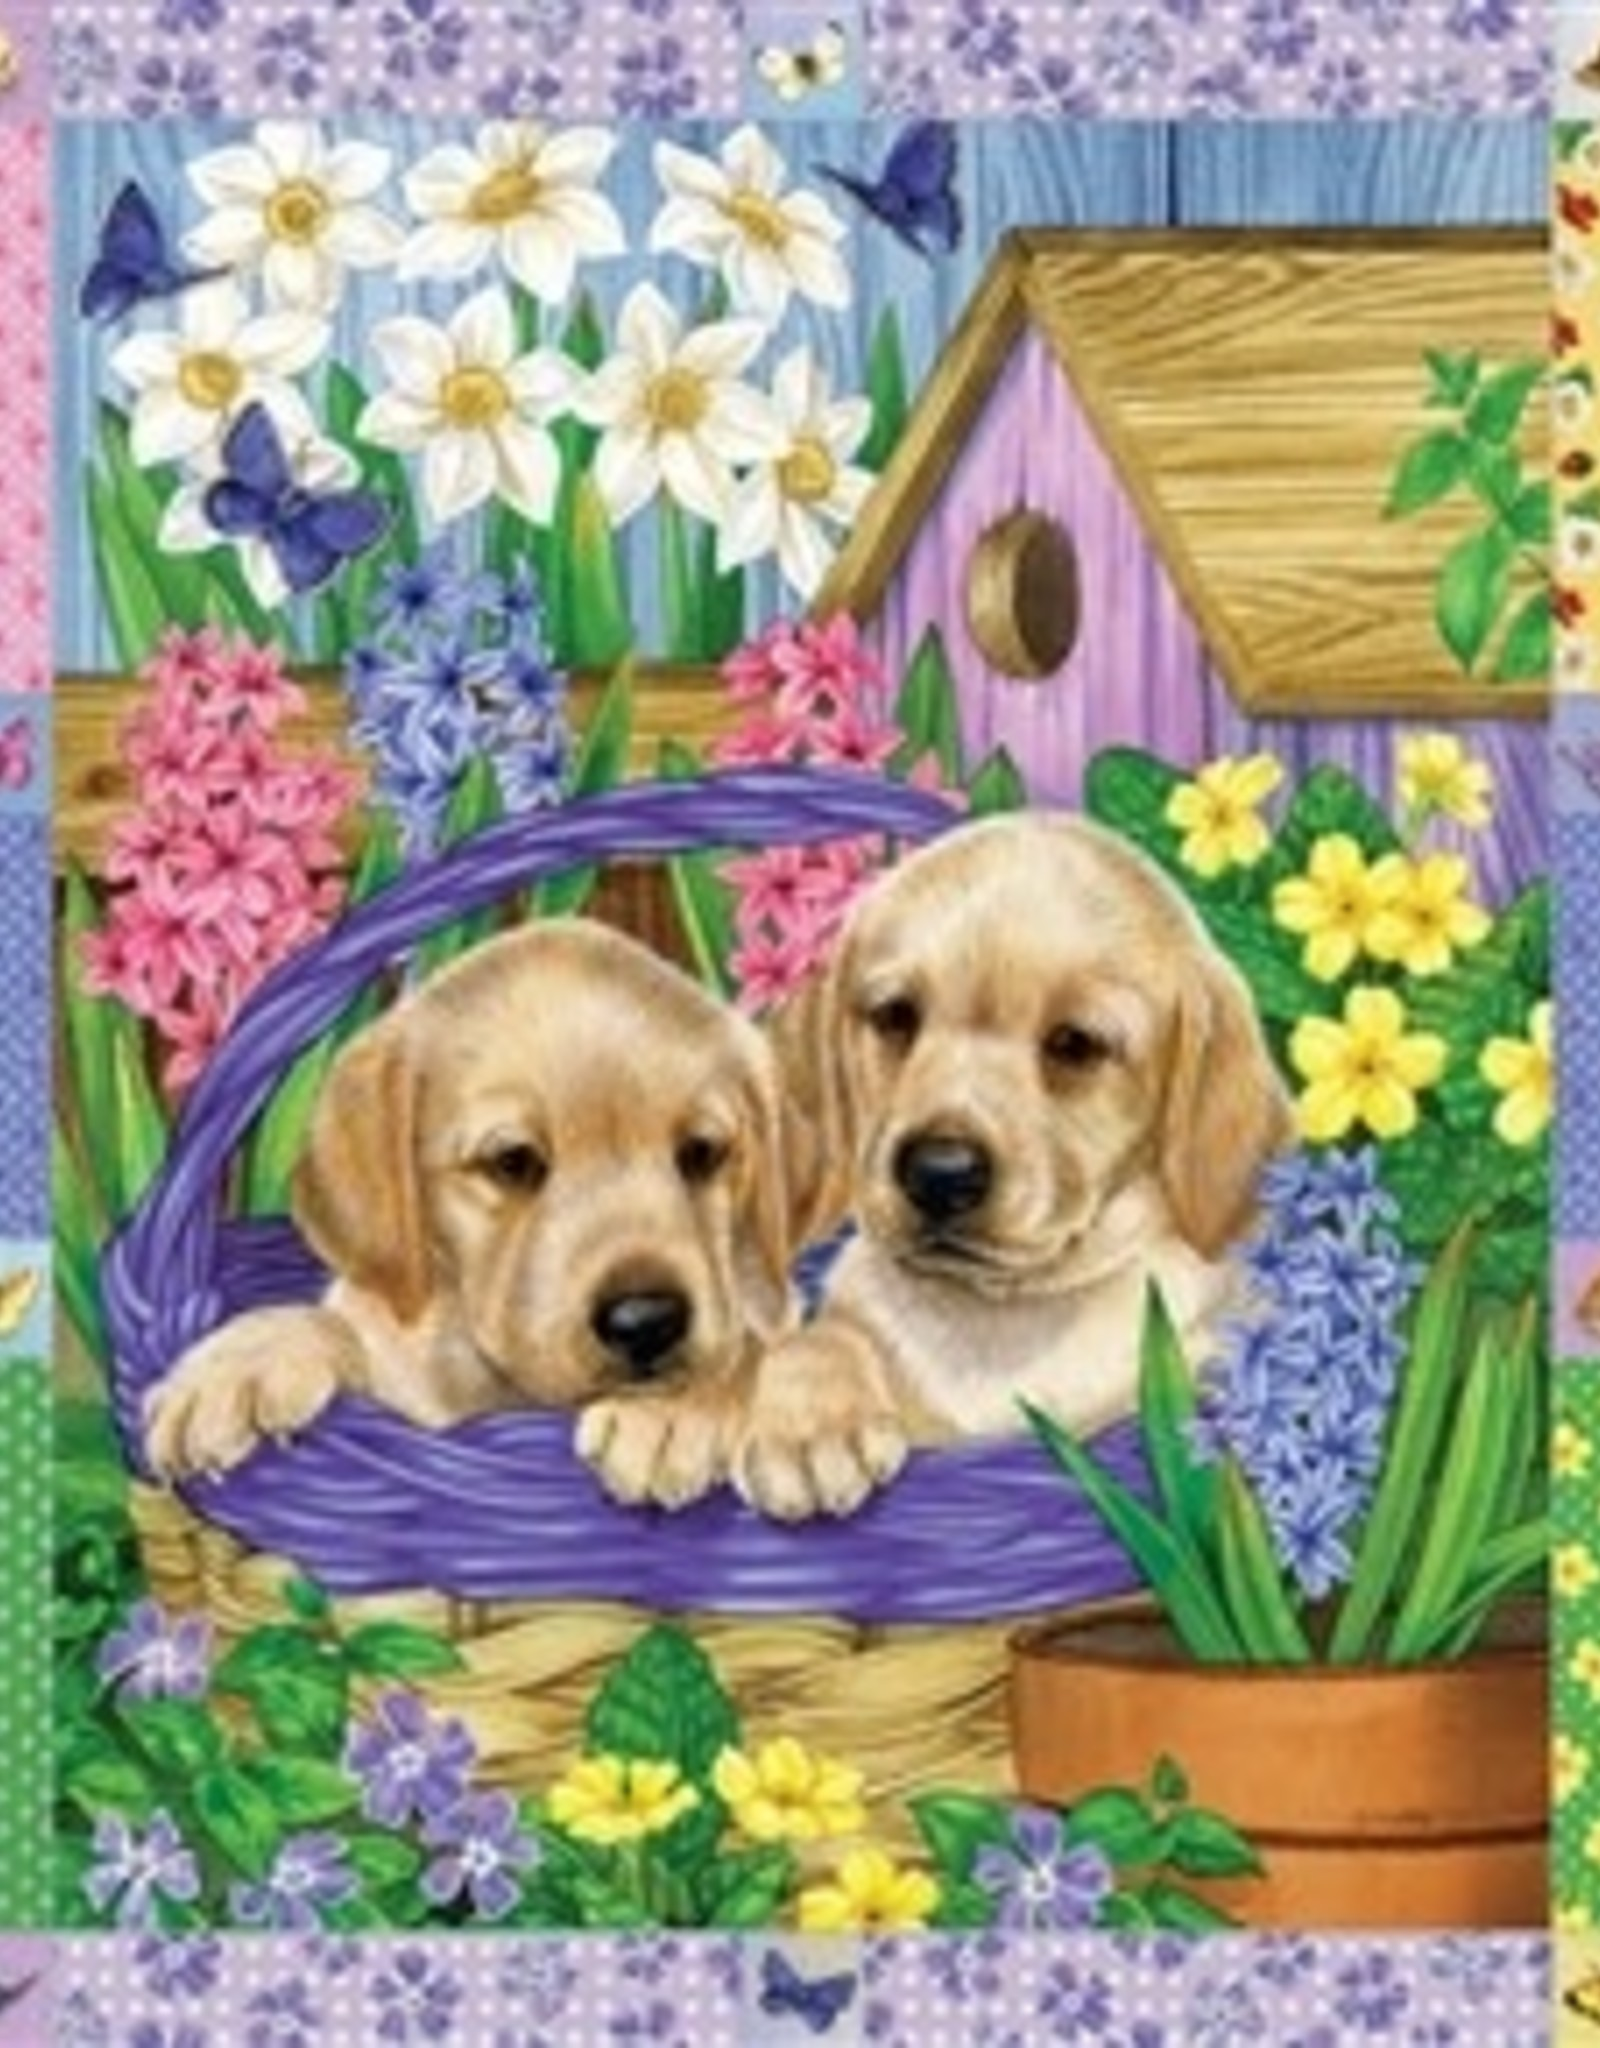 Cobble Hill Puppies and Posies Quilt 1000pc